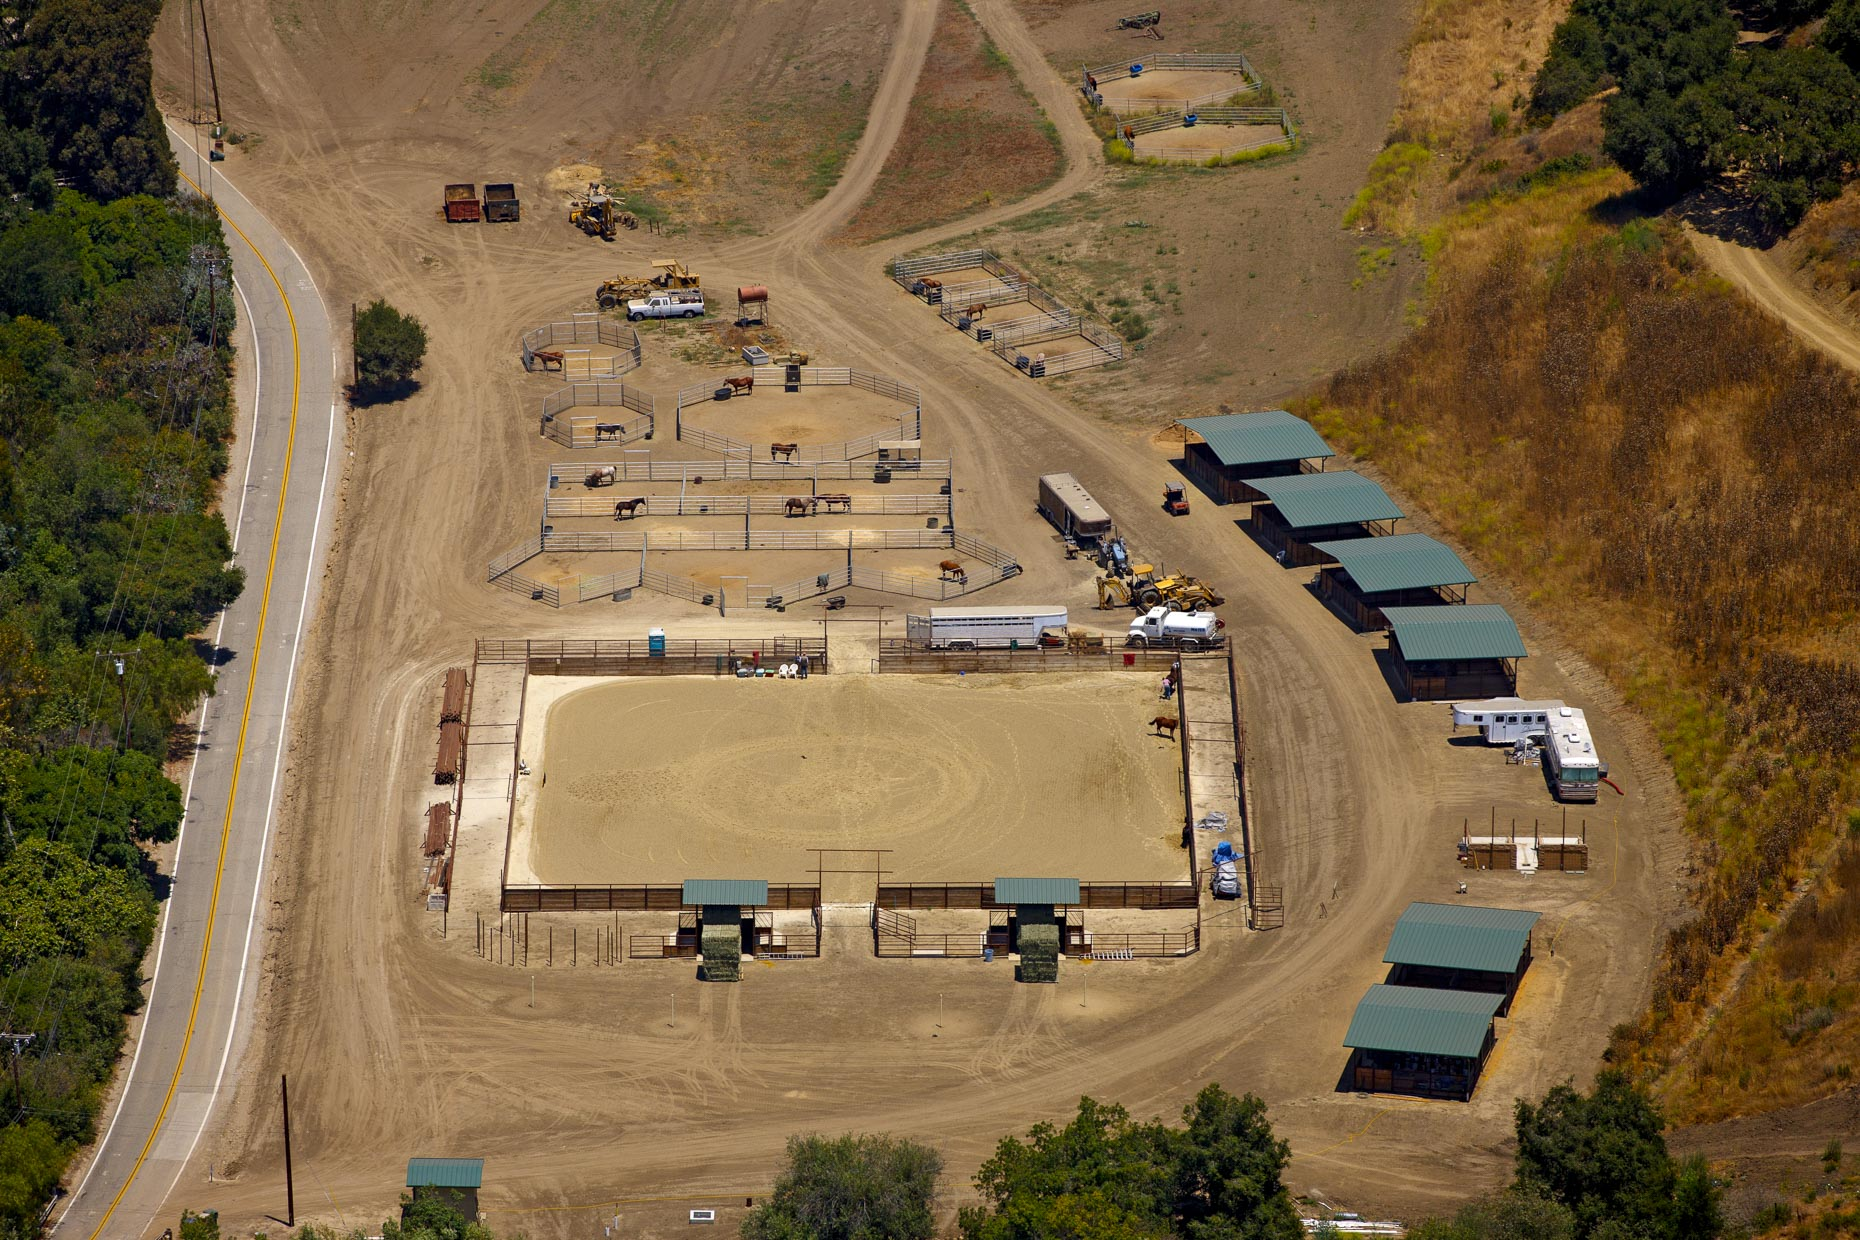 Aerial photography of Equestrian Setting in California